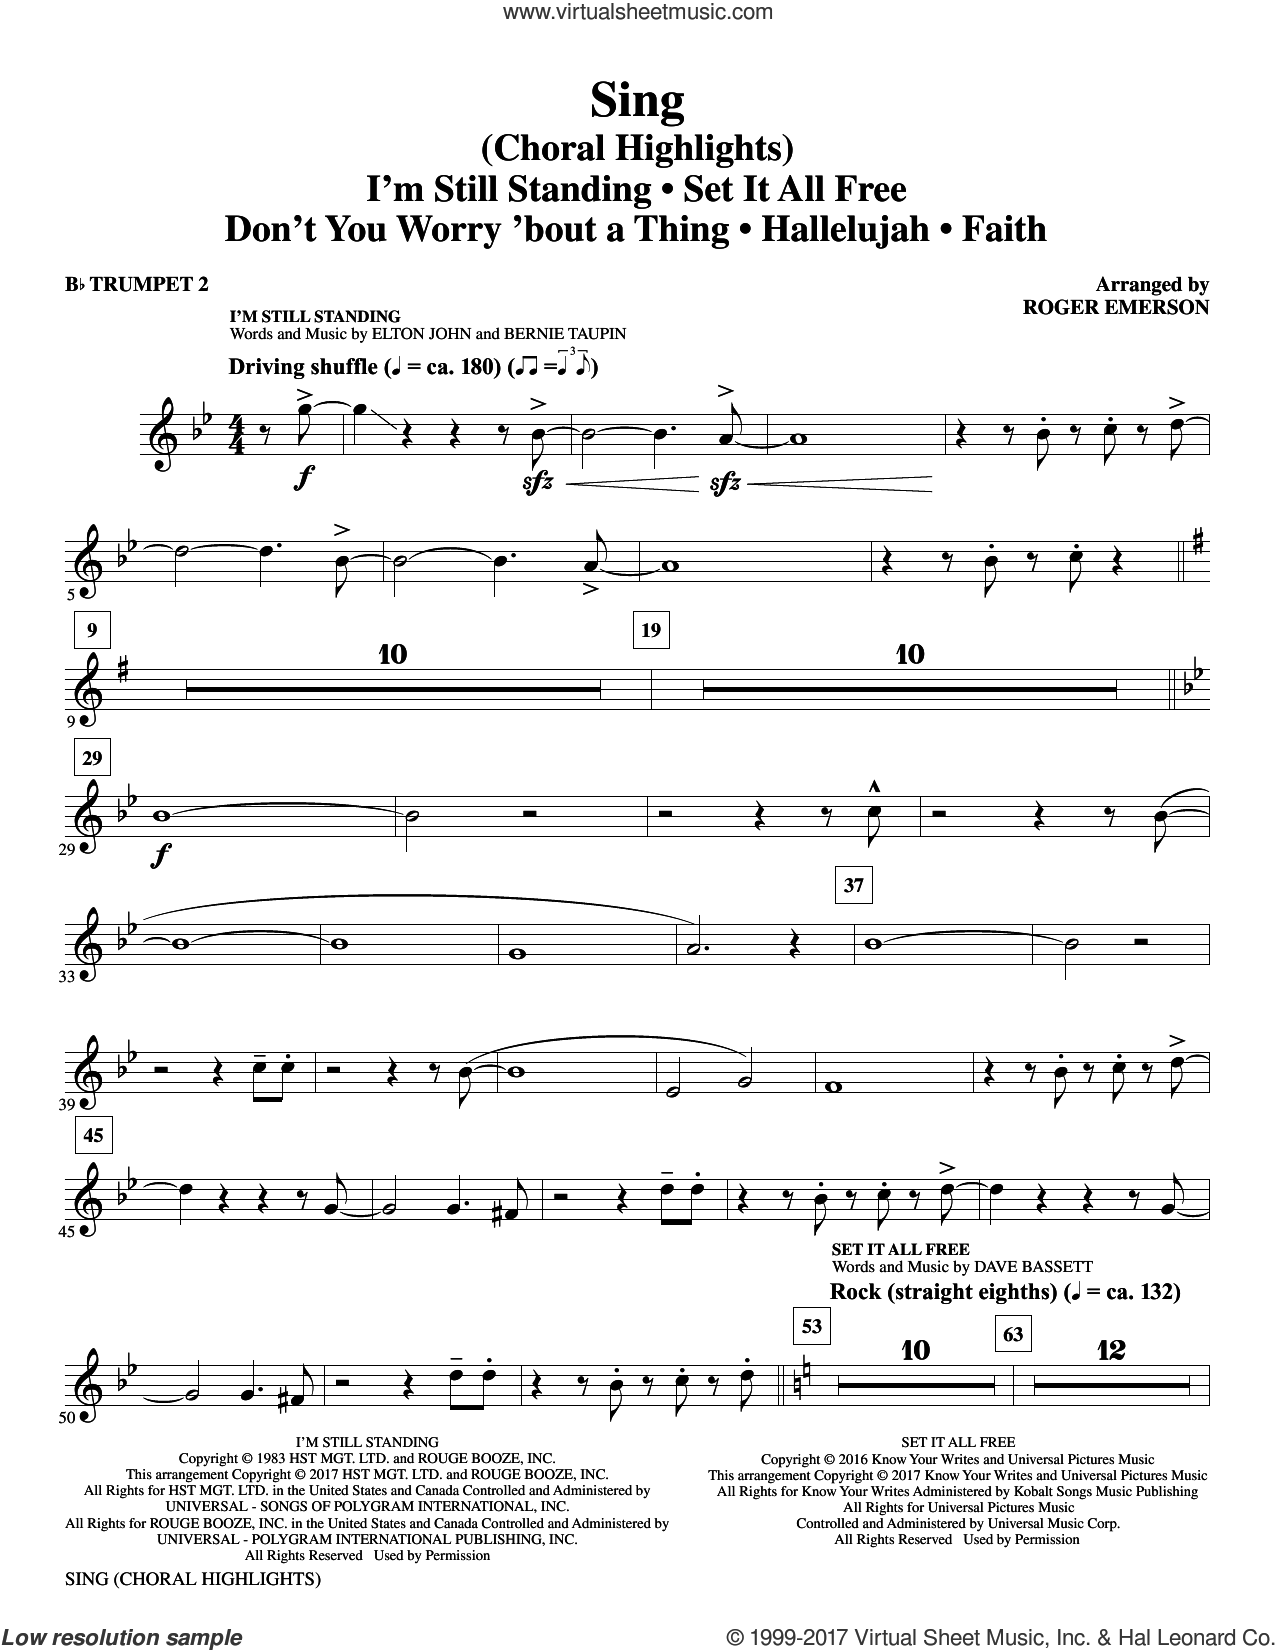 Sing (Choral Highlights) sheet music for orchestra/band (Bb trumpet 2) by Leonard Cohen, Roger Emerson, Justin Timberlake & Matt Morris featuring Charlie Sexton and Lee DeWyze, intermediate. Score Image Preview.